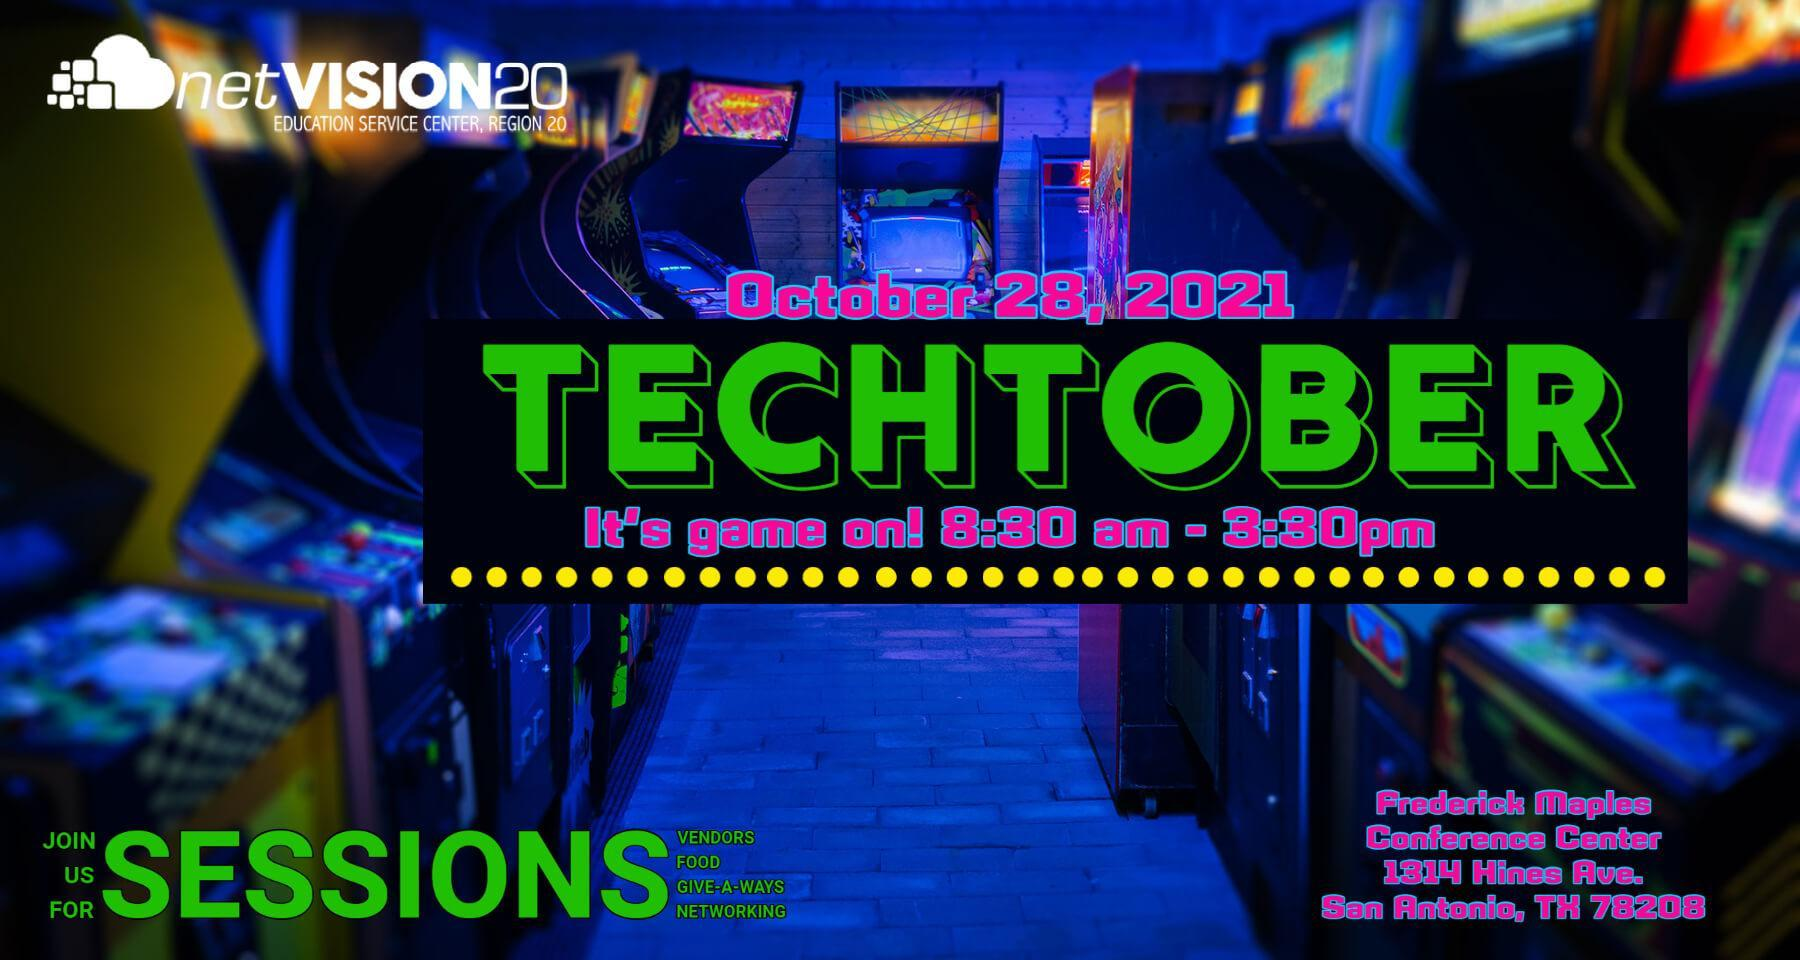 October 28, 2021, Techtober It's game on! 8:30 am - 3:30 pmJoin us of Sessions, Vendors, Networking